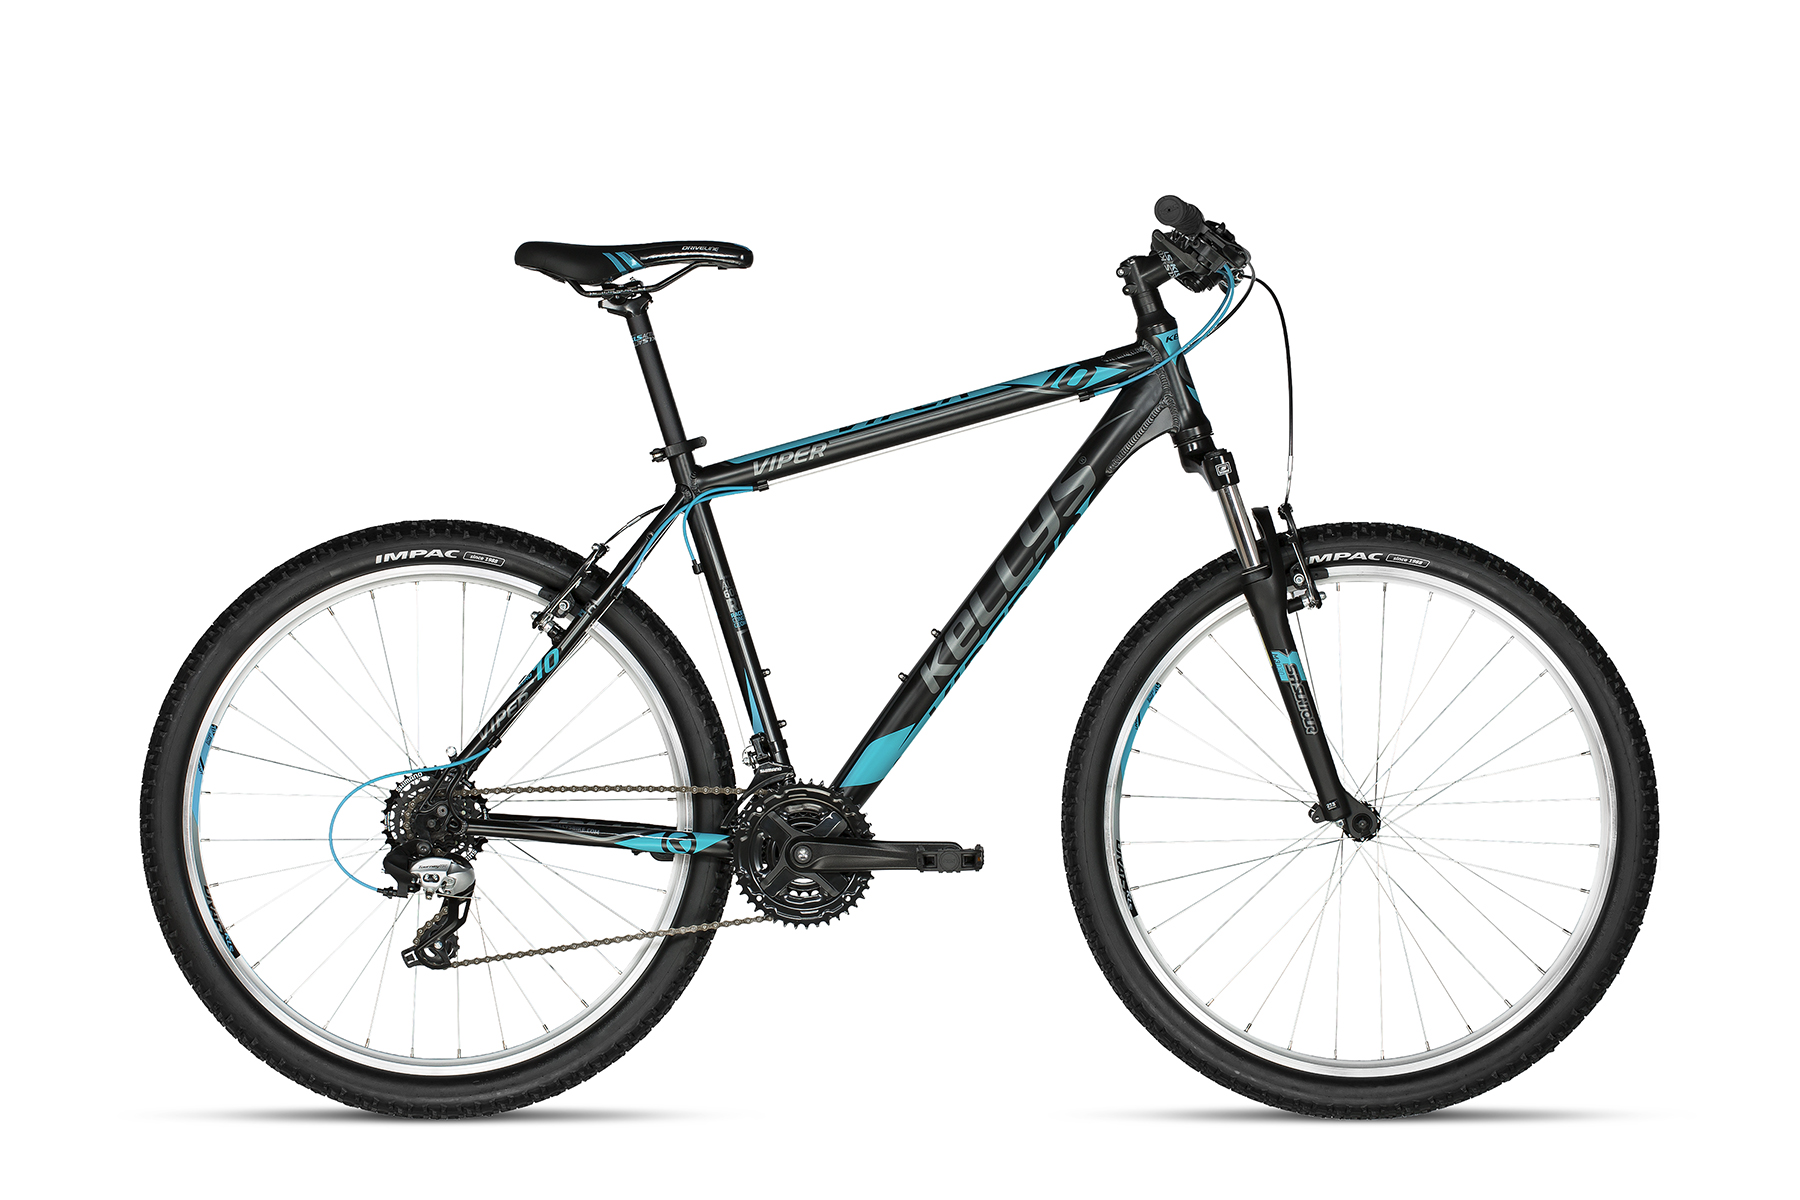 KELLYS Viper 10 Black Blue 27.5 19.5´´ - KELLYS Viper 10 Black Blue 27.5 19.5´´